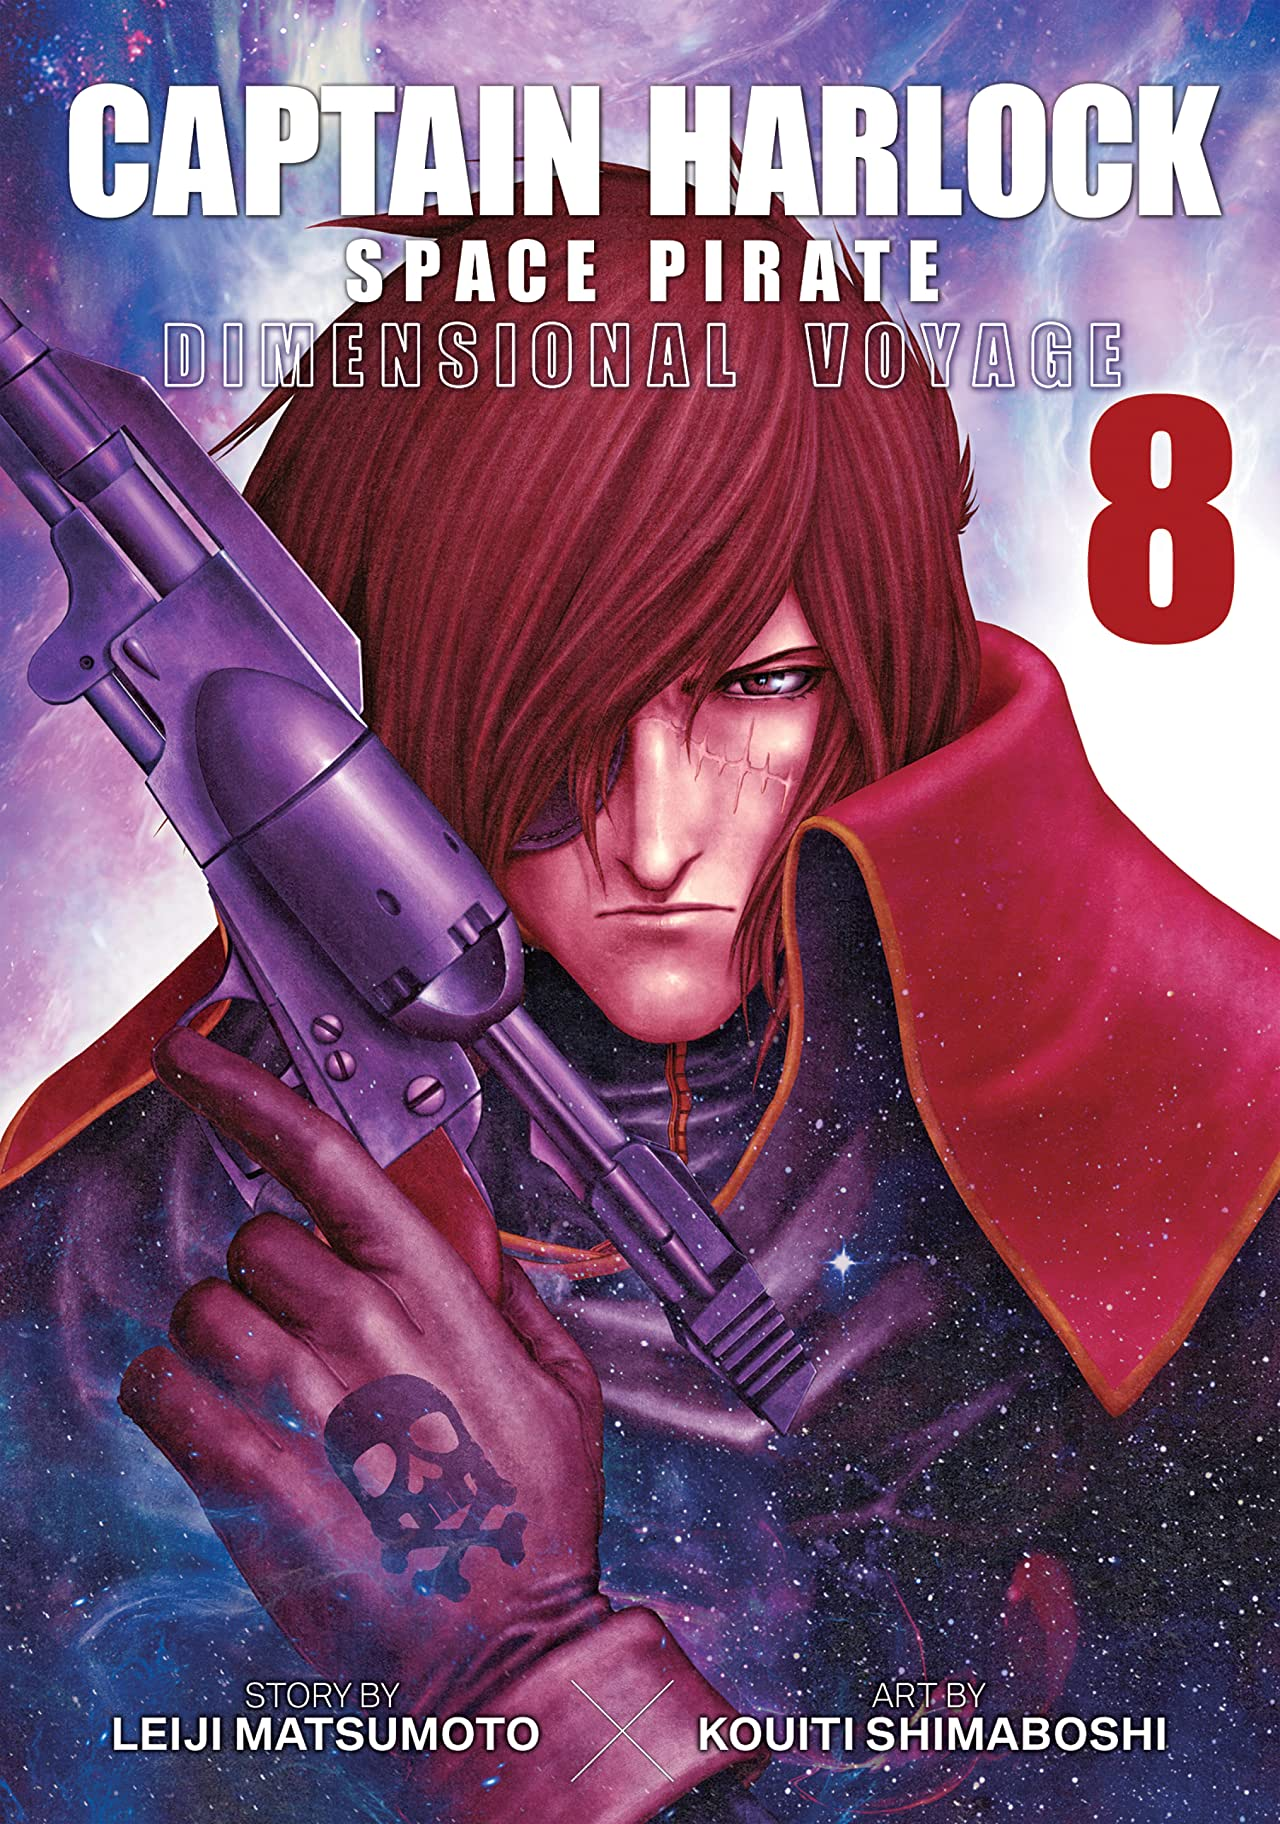 Captain Harlock Space Pirate: Dimensional Voyage Vol. 8